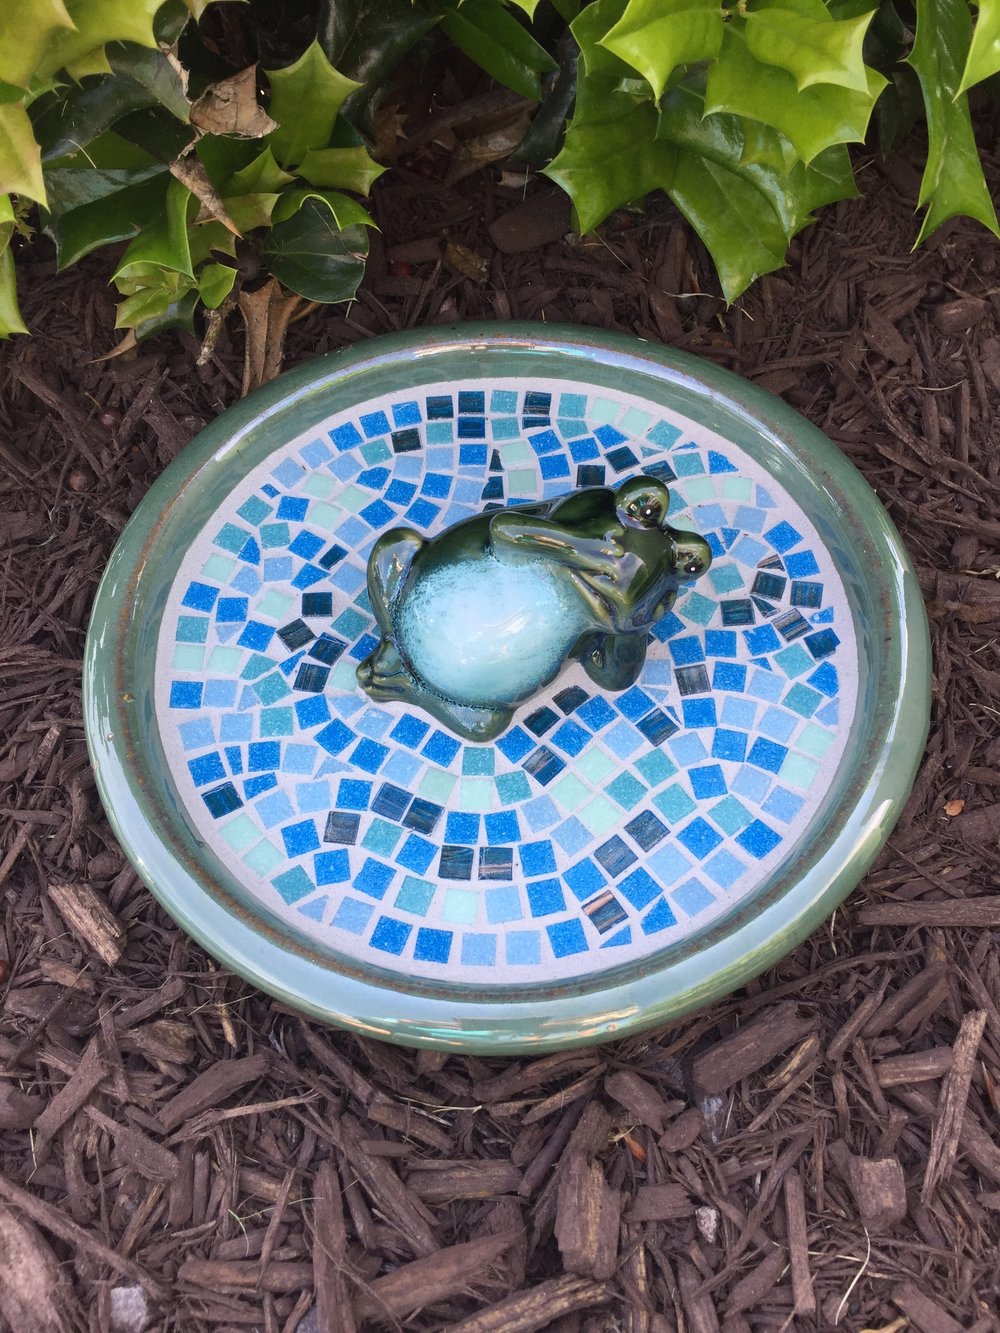 Saturday, March 17 at 9:30 AM - 2:30 PM   Mosaic Froggie Birdbath Class   · Hosted by    Artfully Yours Studio     1303 Jamestown Rd, Williamsburg, Virginia 23185    and  Tinted Hues